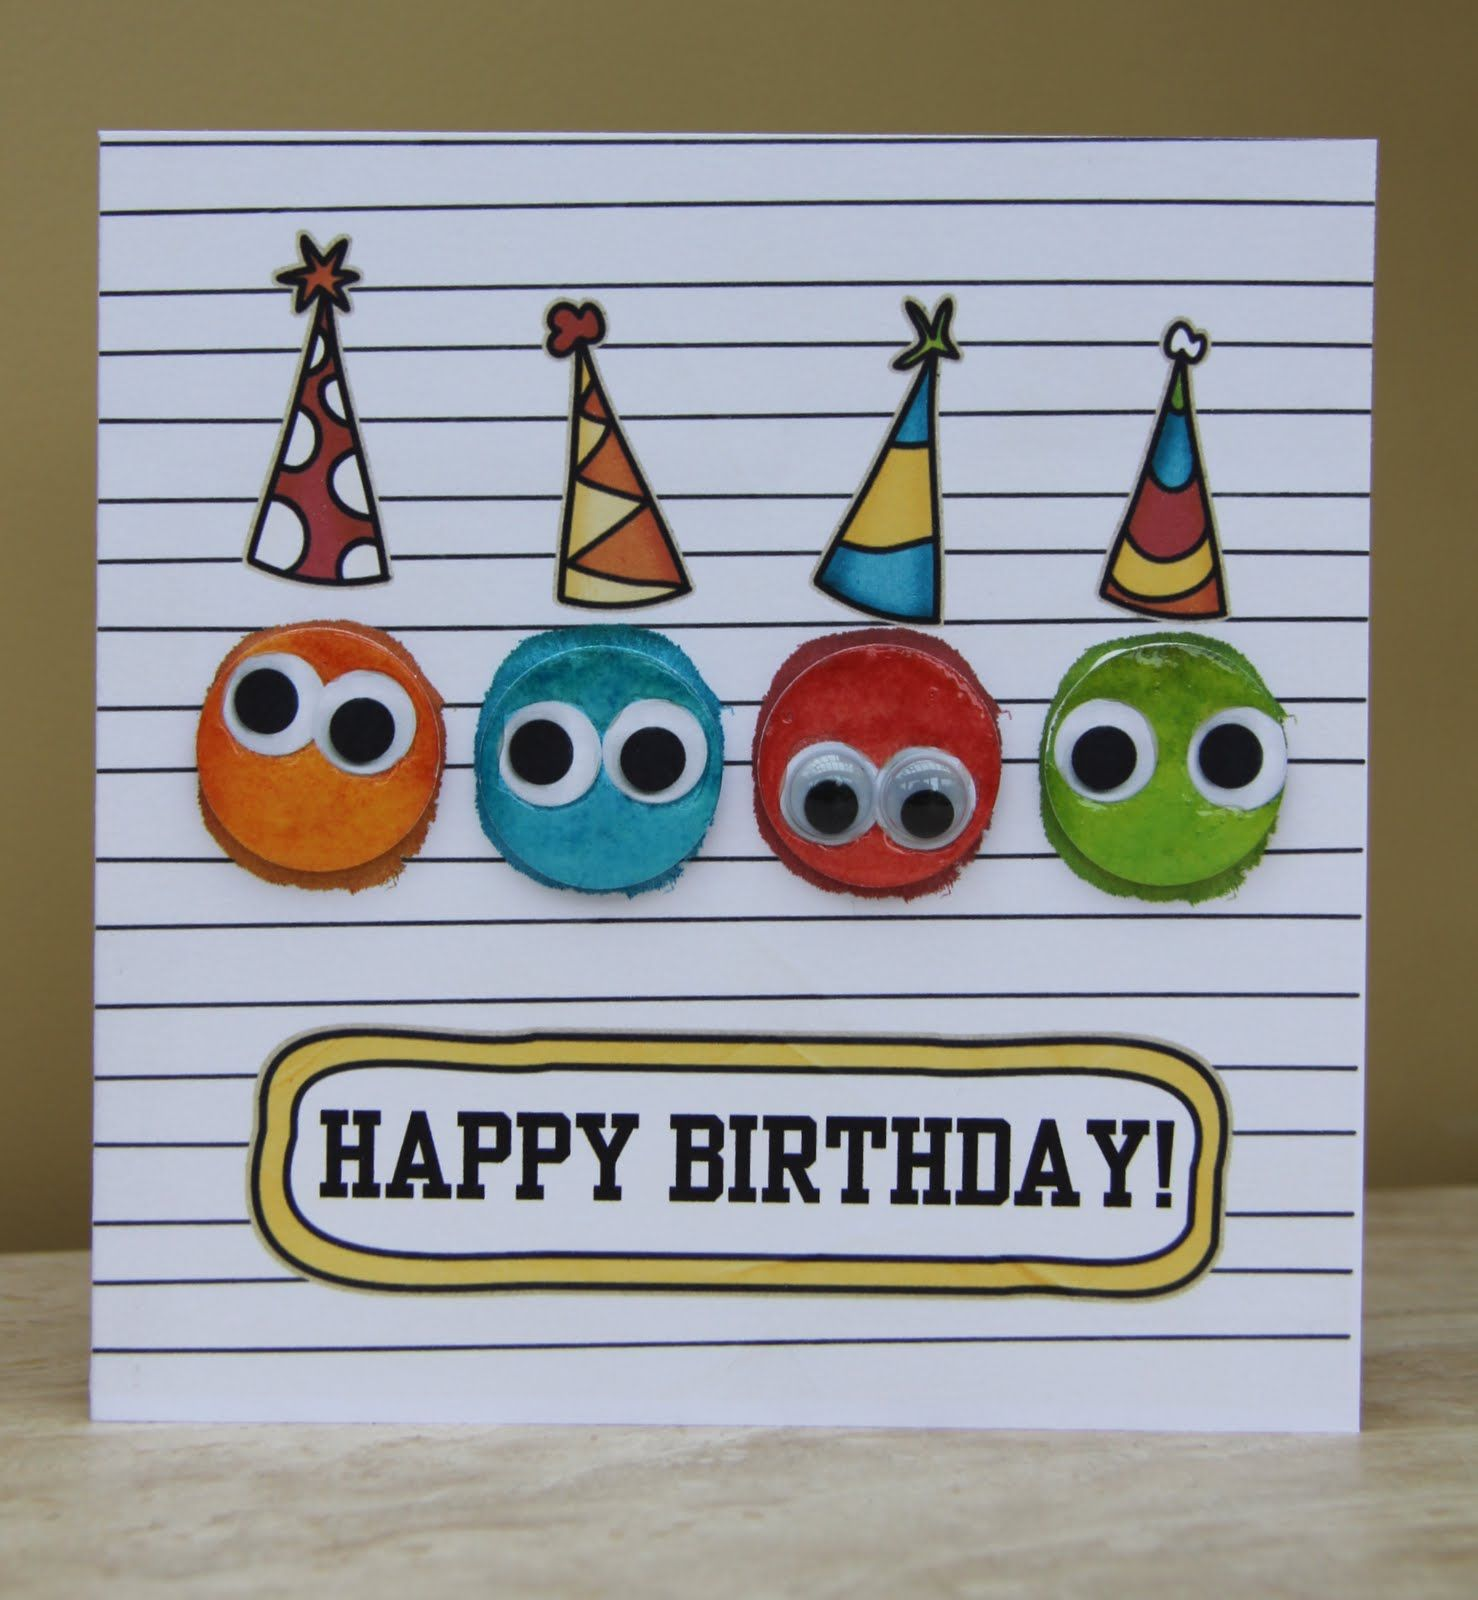 Homemade birthday cards punched the little faces out with my